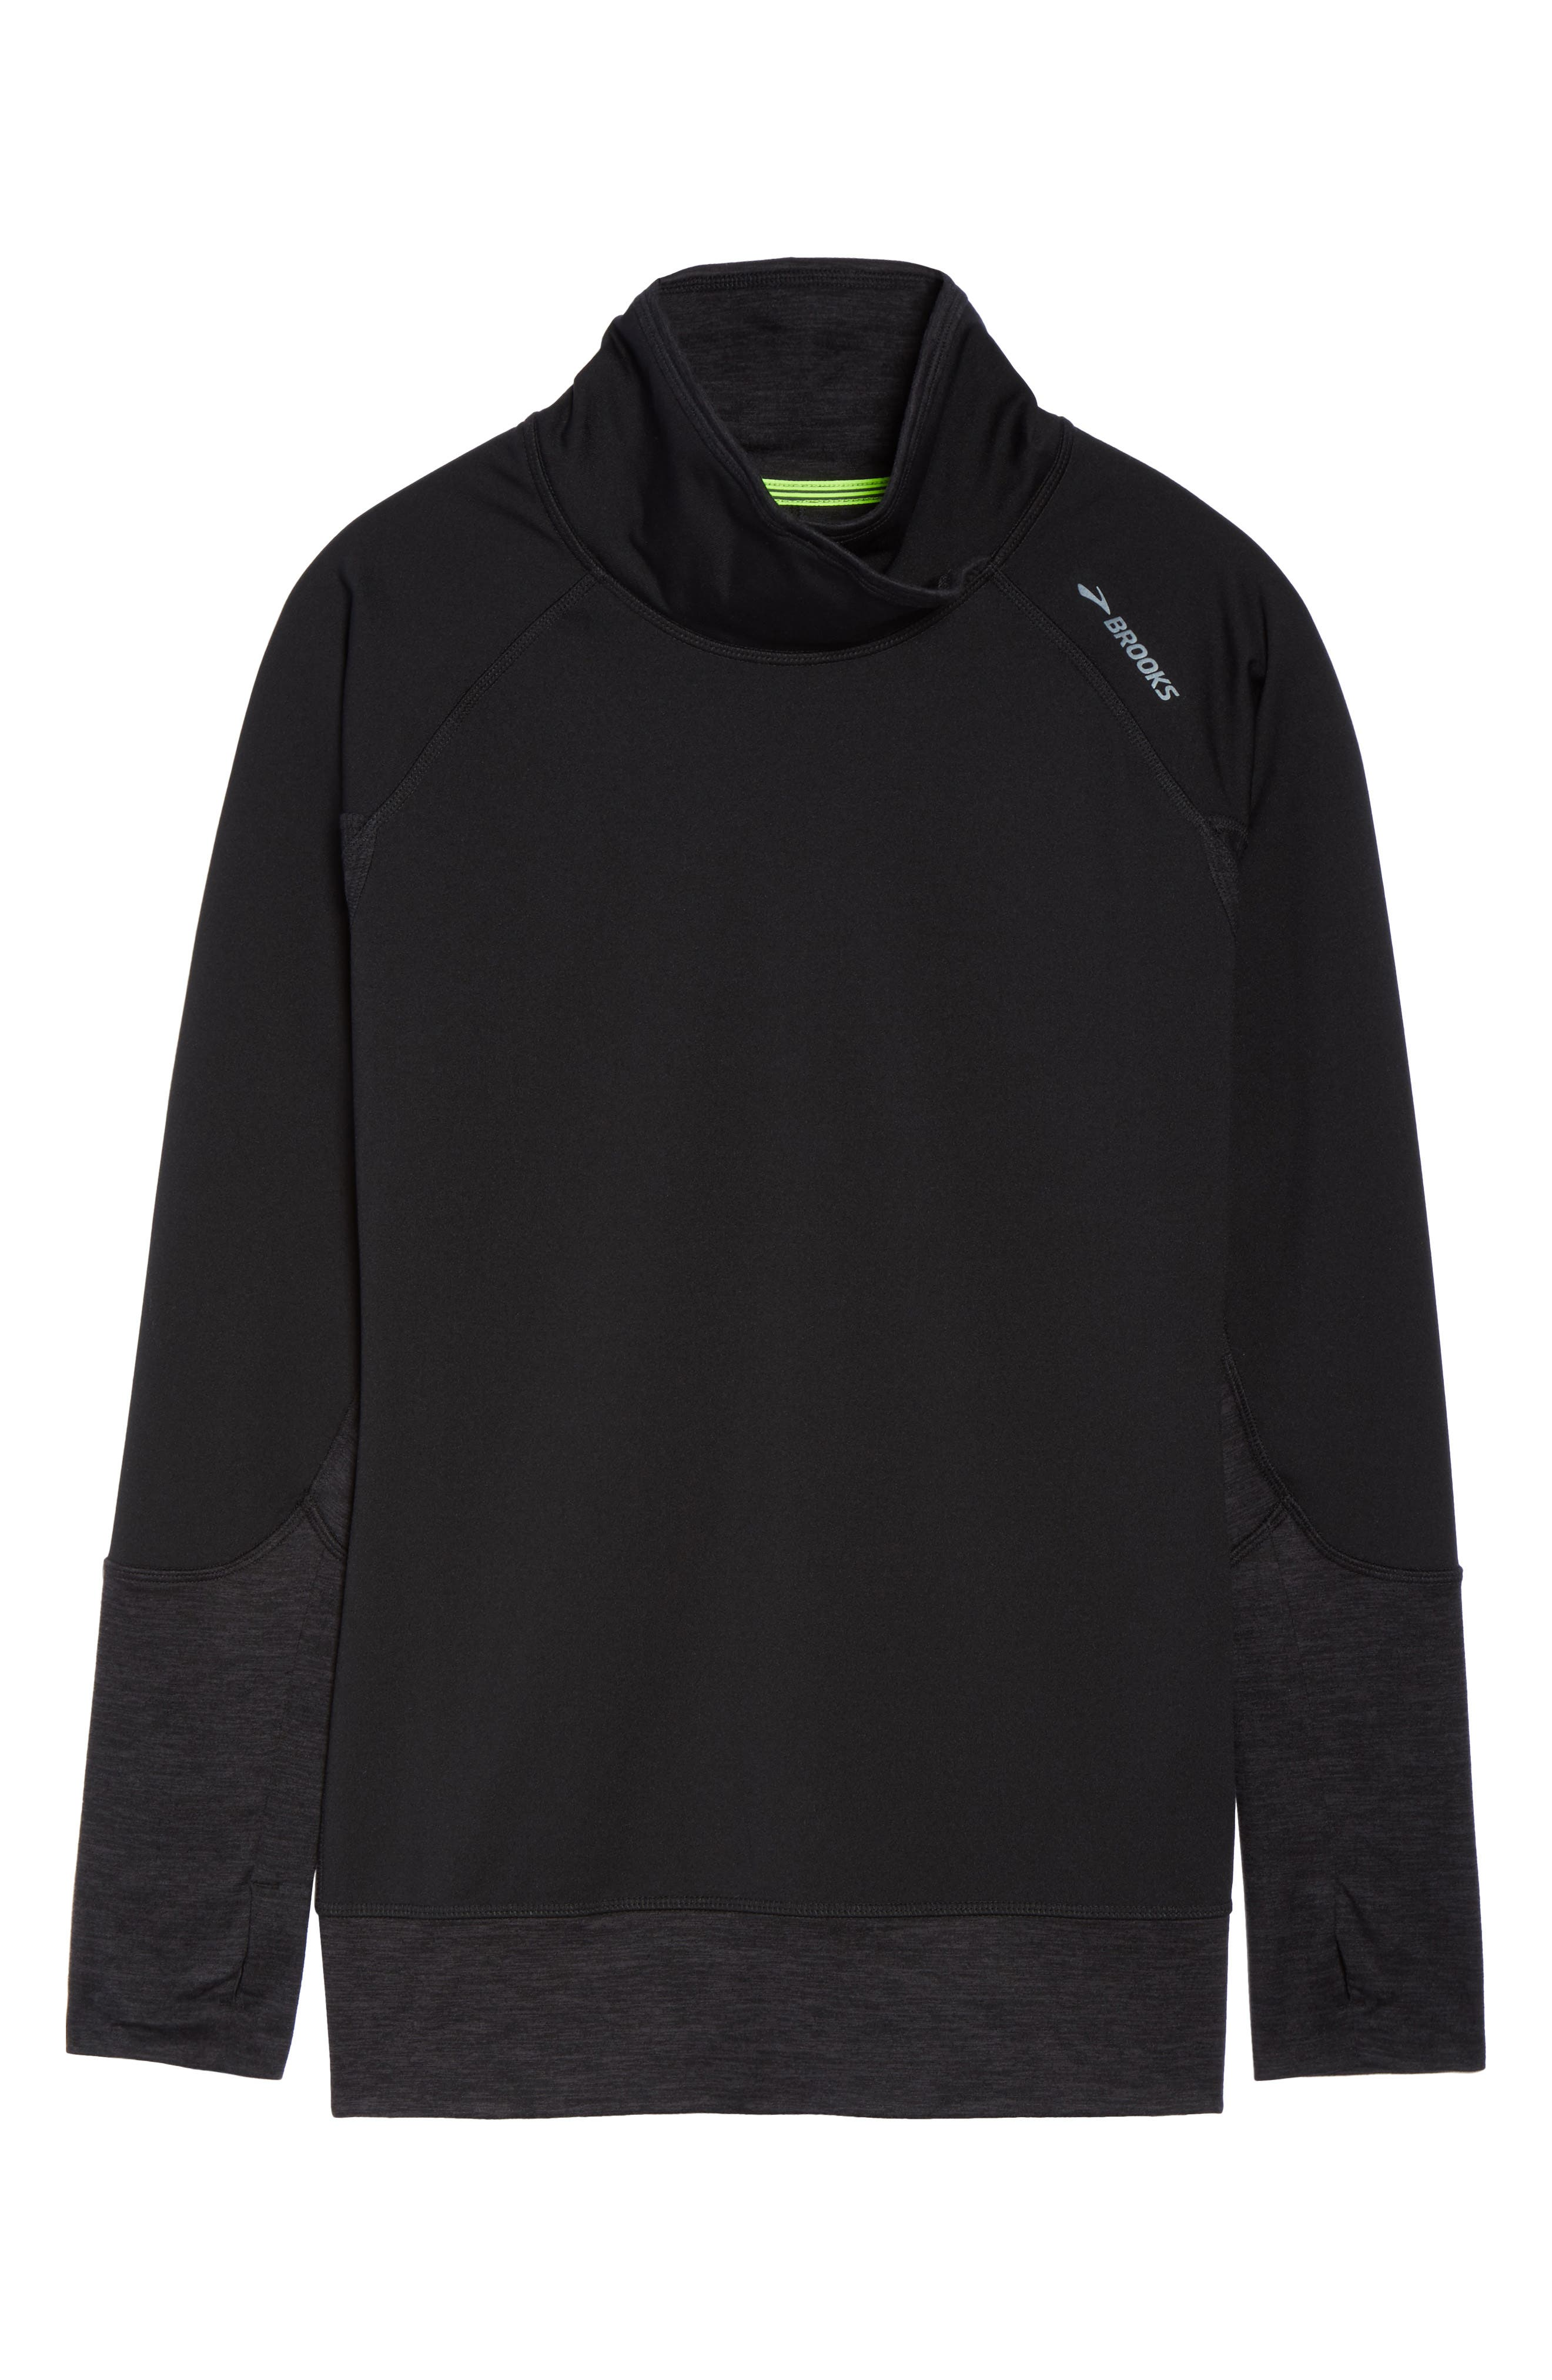 Performance Pullover,                             Alternate thumbnail 7, color,                             001